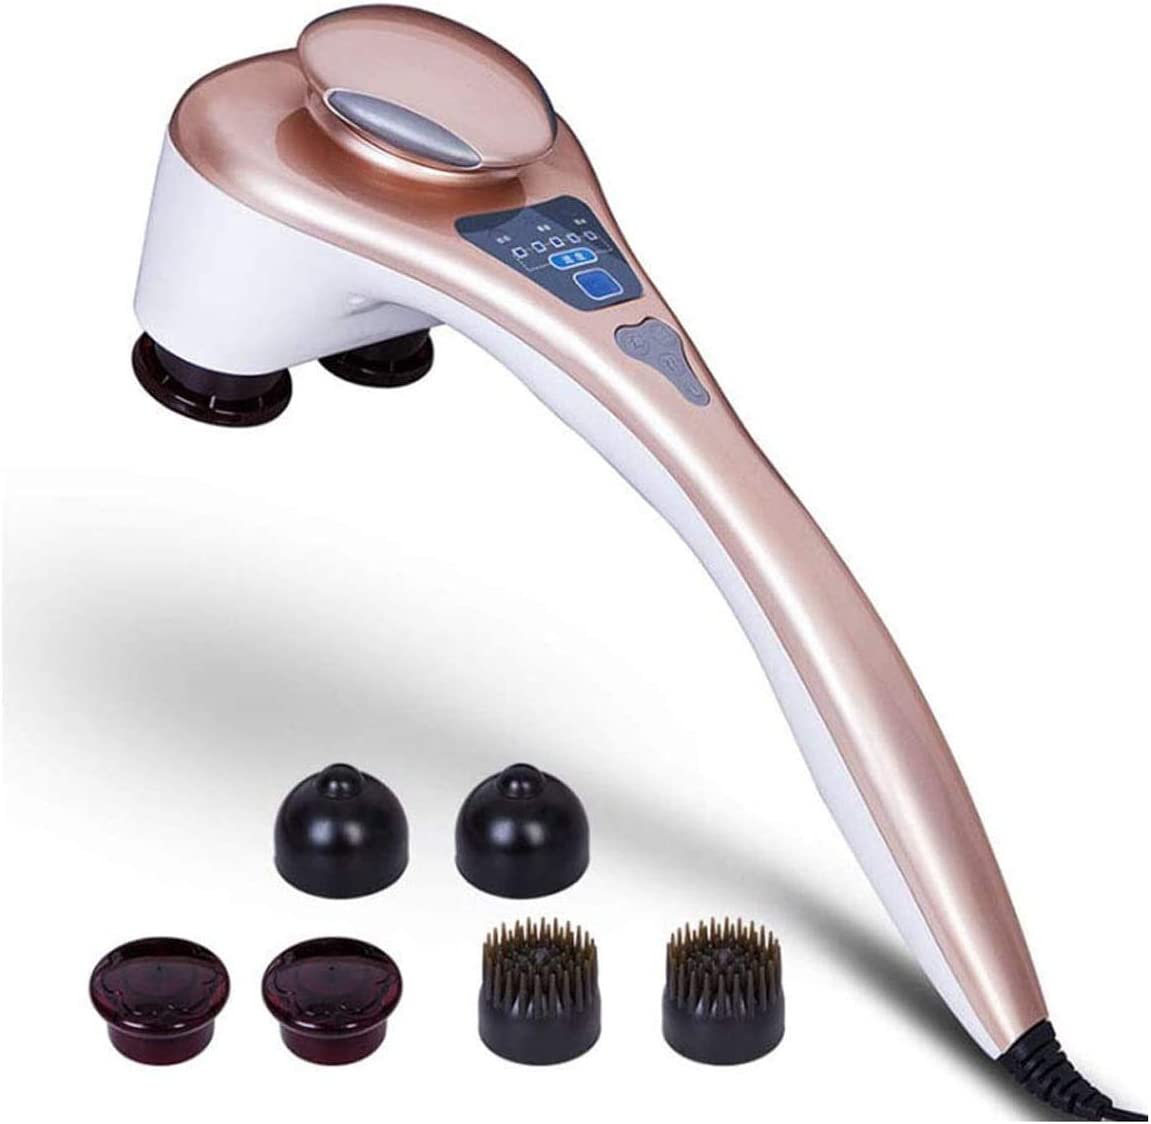 quality assurance ZLHW Double Head Handheld Electric De Heating Massager Back Attention brand with